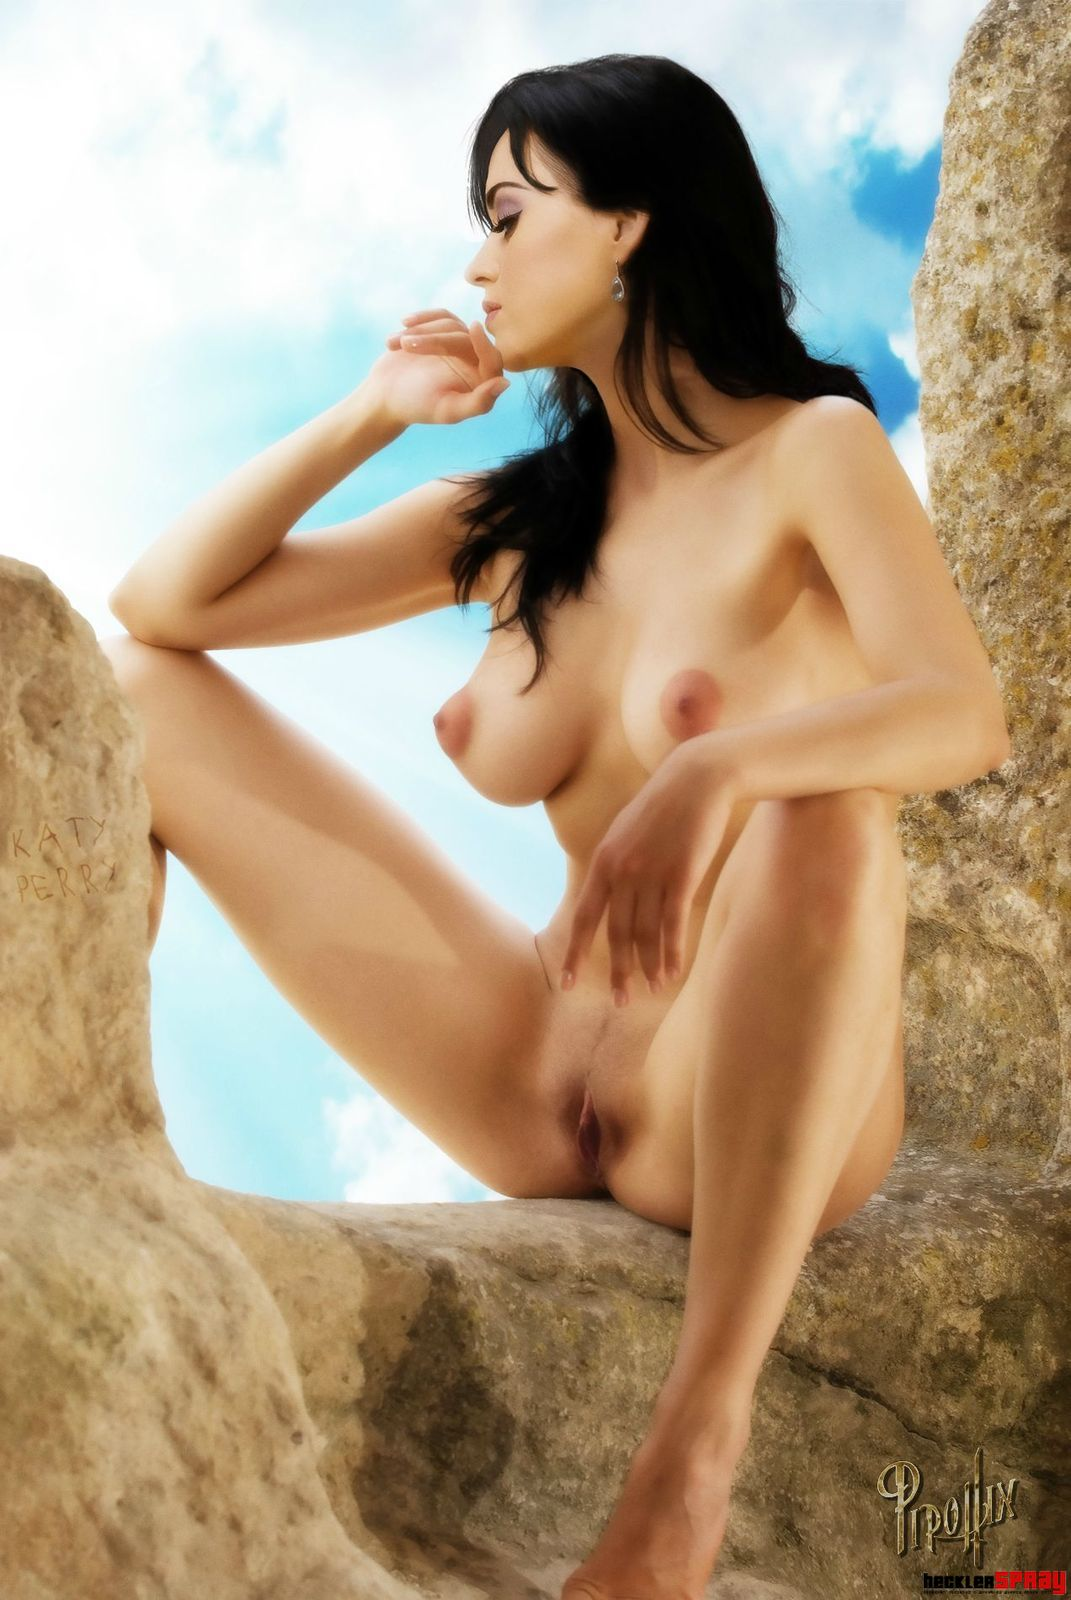 Katy perry nude real